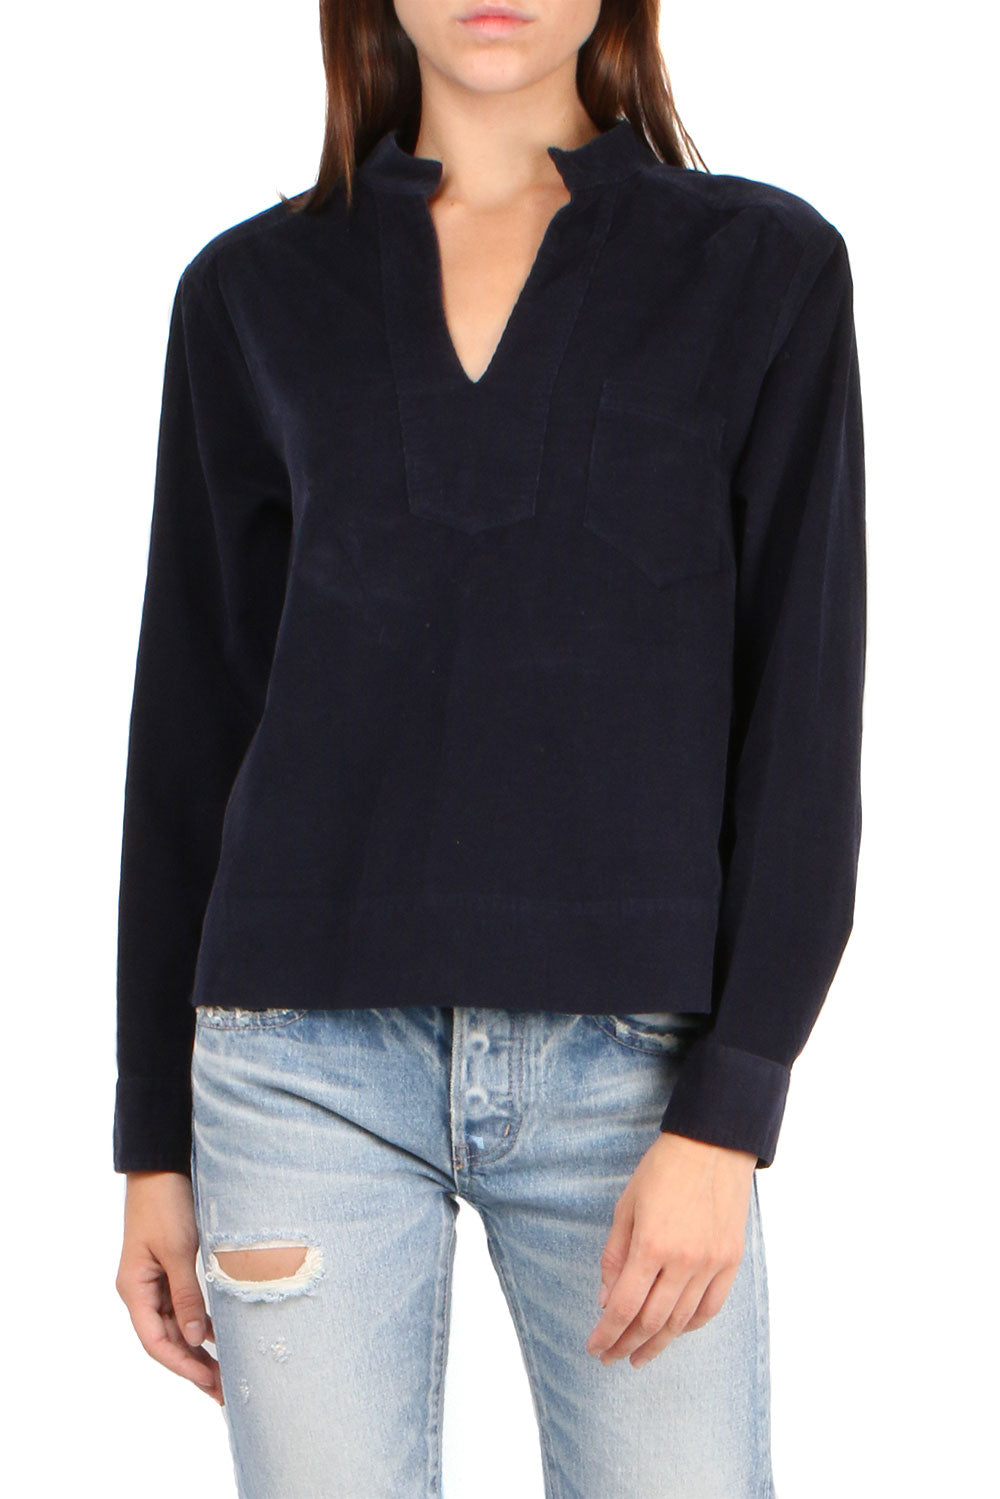 Morely Top Navy